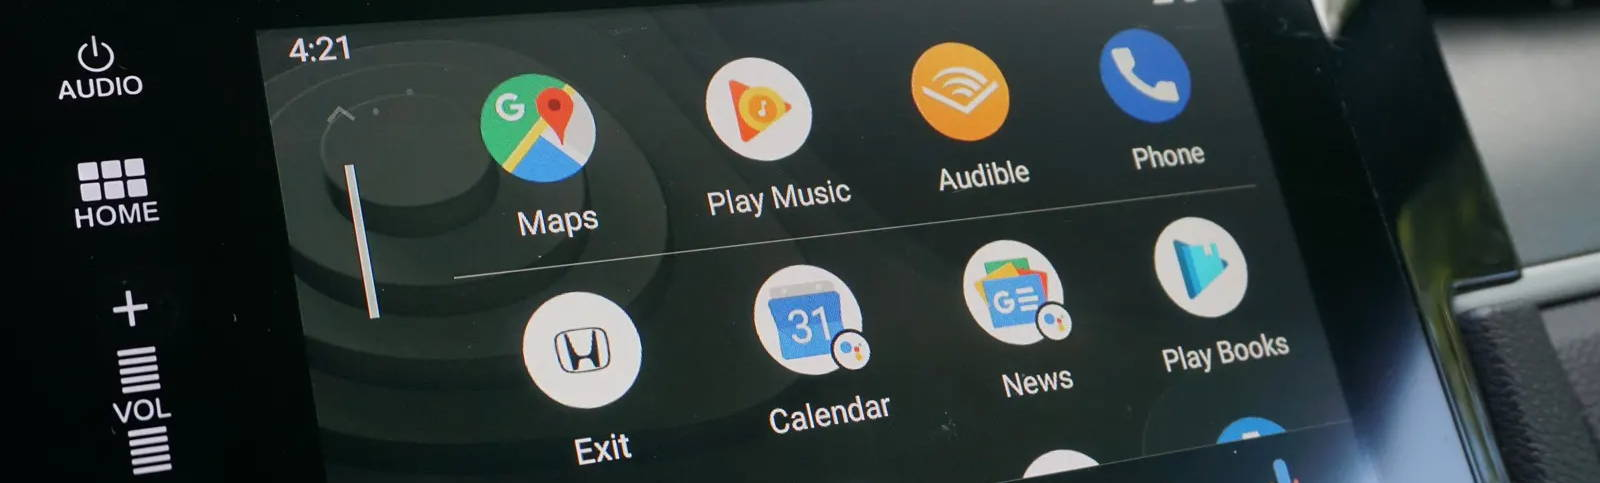 Android Auto Menu